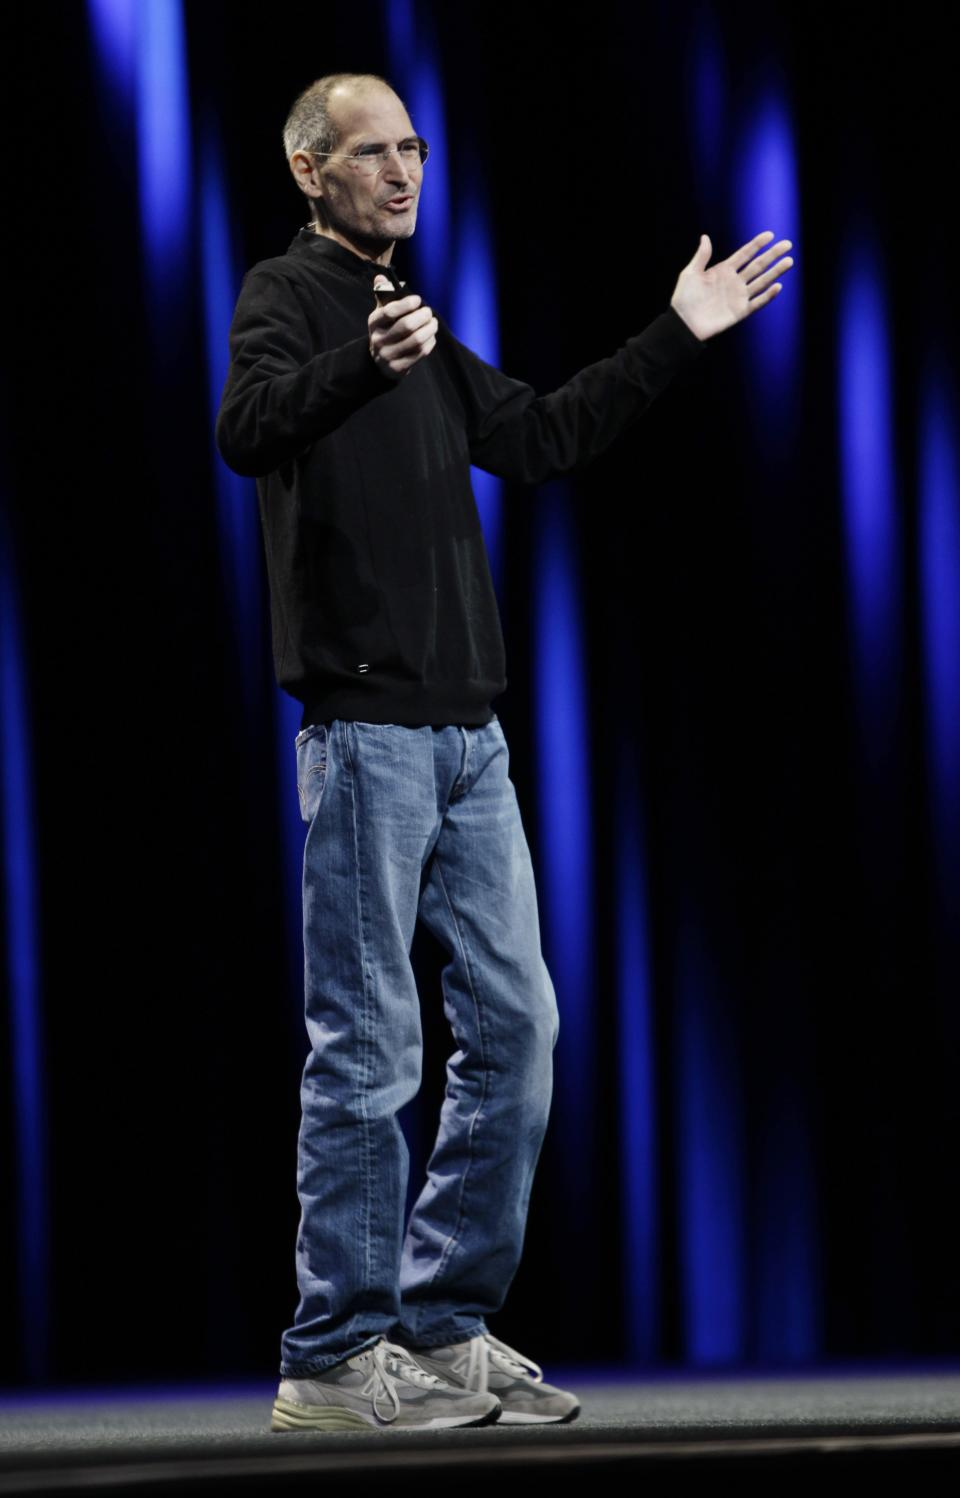 Apple CEO Steve Jobs gestures during a keynote address to the Apple Worldwide Developers Conference in San Francisco, Monday, June 6, 2011. (AP Photo/Paul Sakuma)